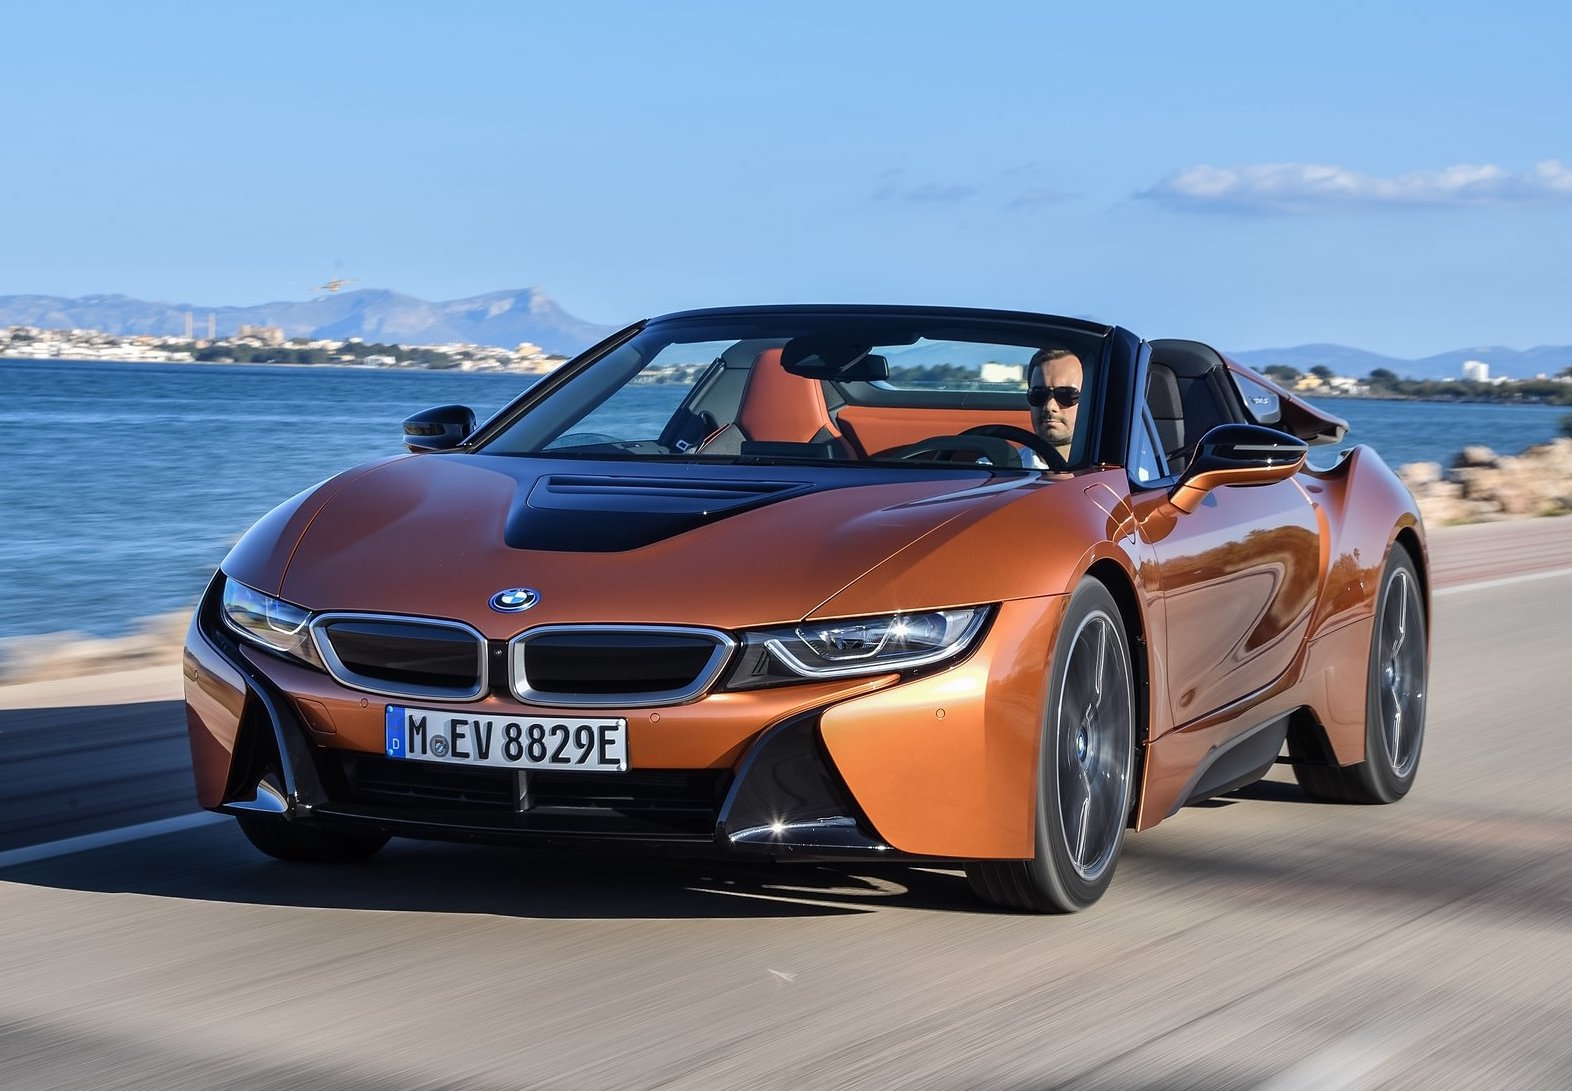 2018 Bmw I8 Roadster Amp Coupe Lci Update Now On Sale In